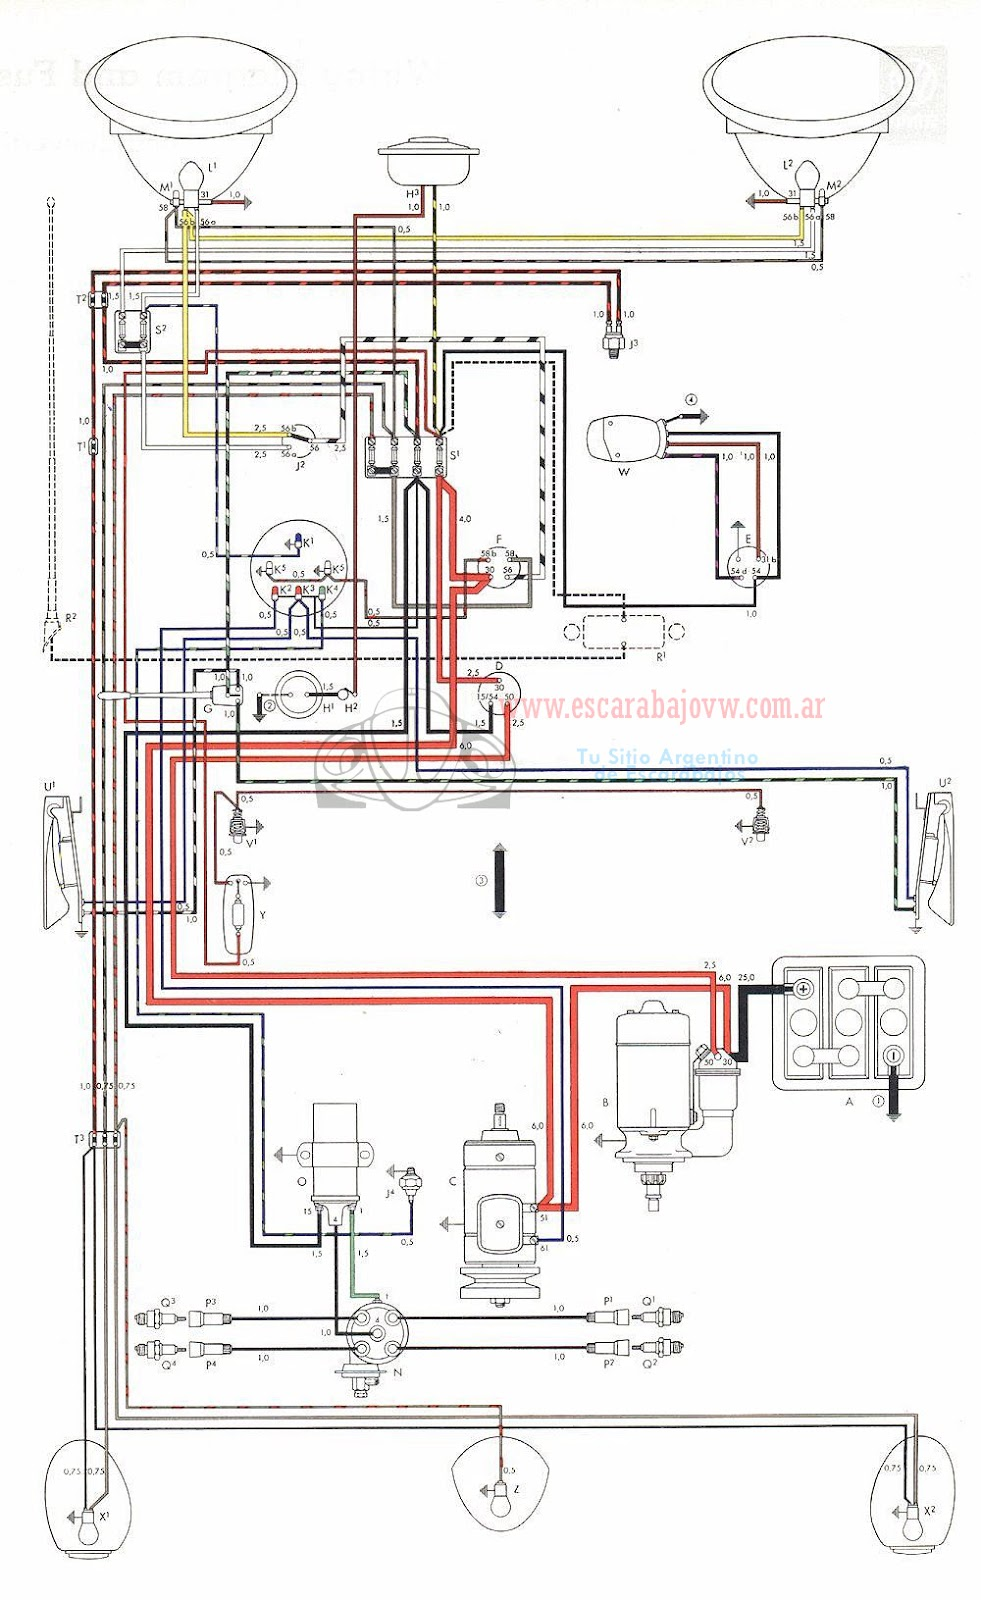 small resolution of 2012 chevrolet sonic wiring diagram 2014 chevrolet 1998 chevy malibu engine diagram 2013 chevy malibu engine